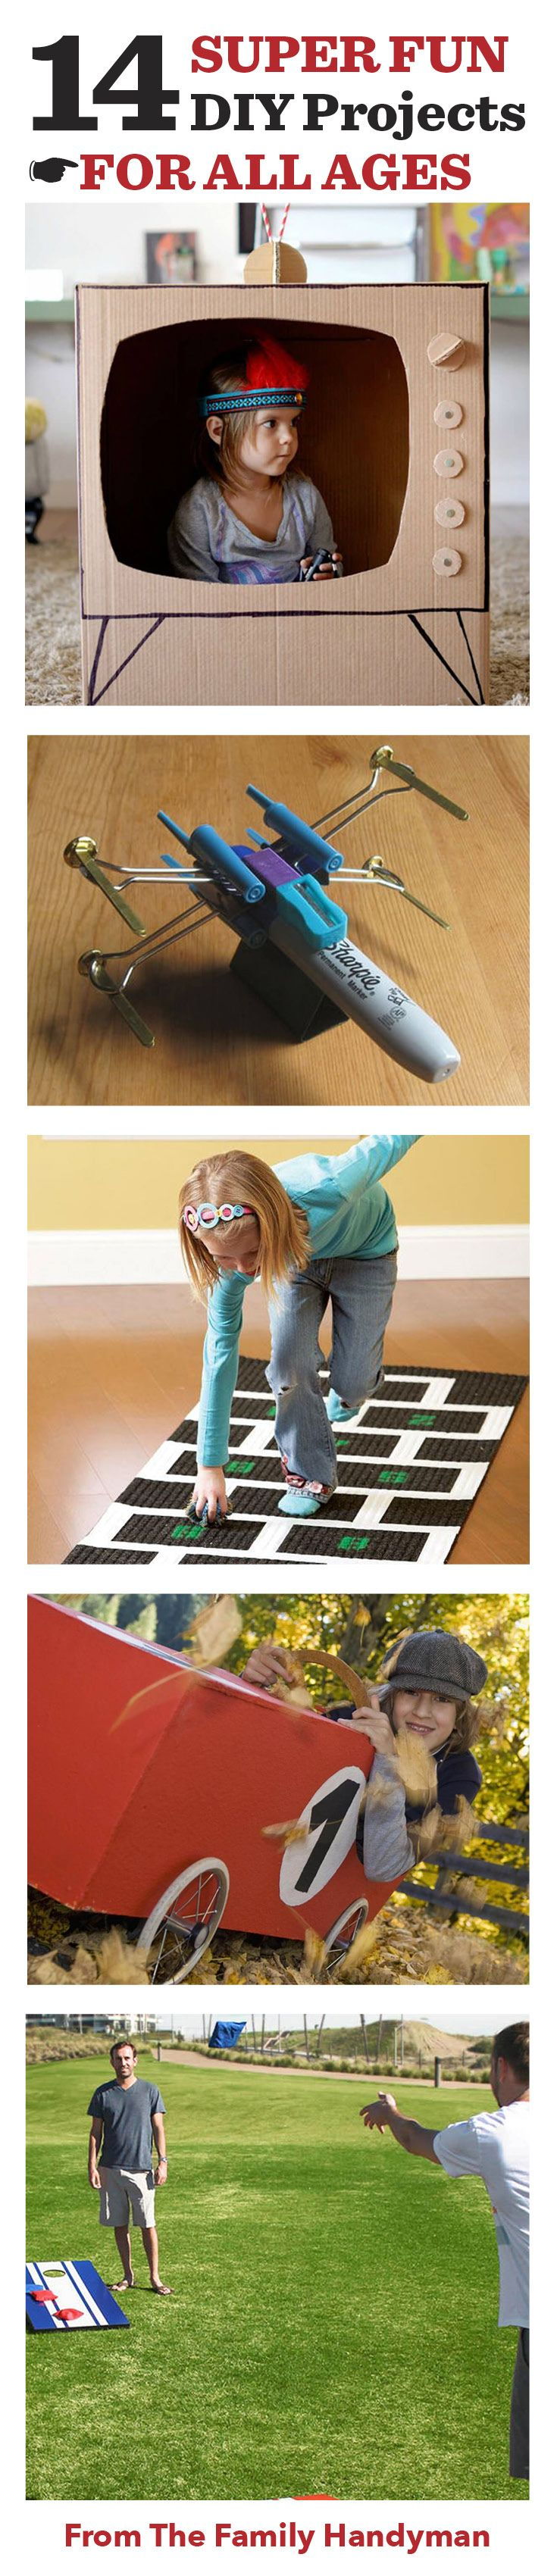 14 Super Fun DIY Projects for All